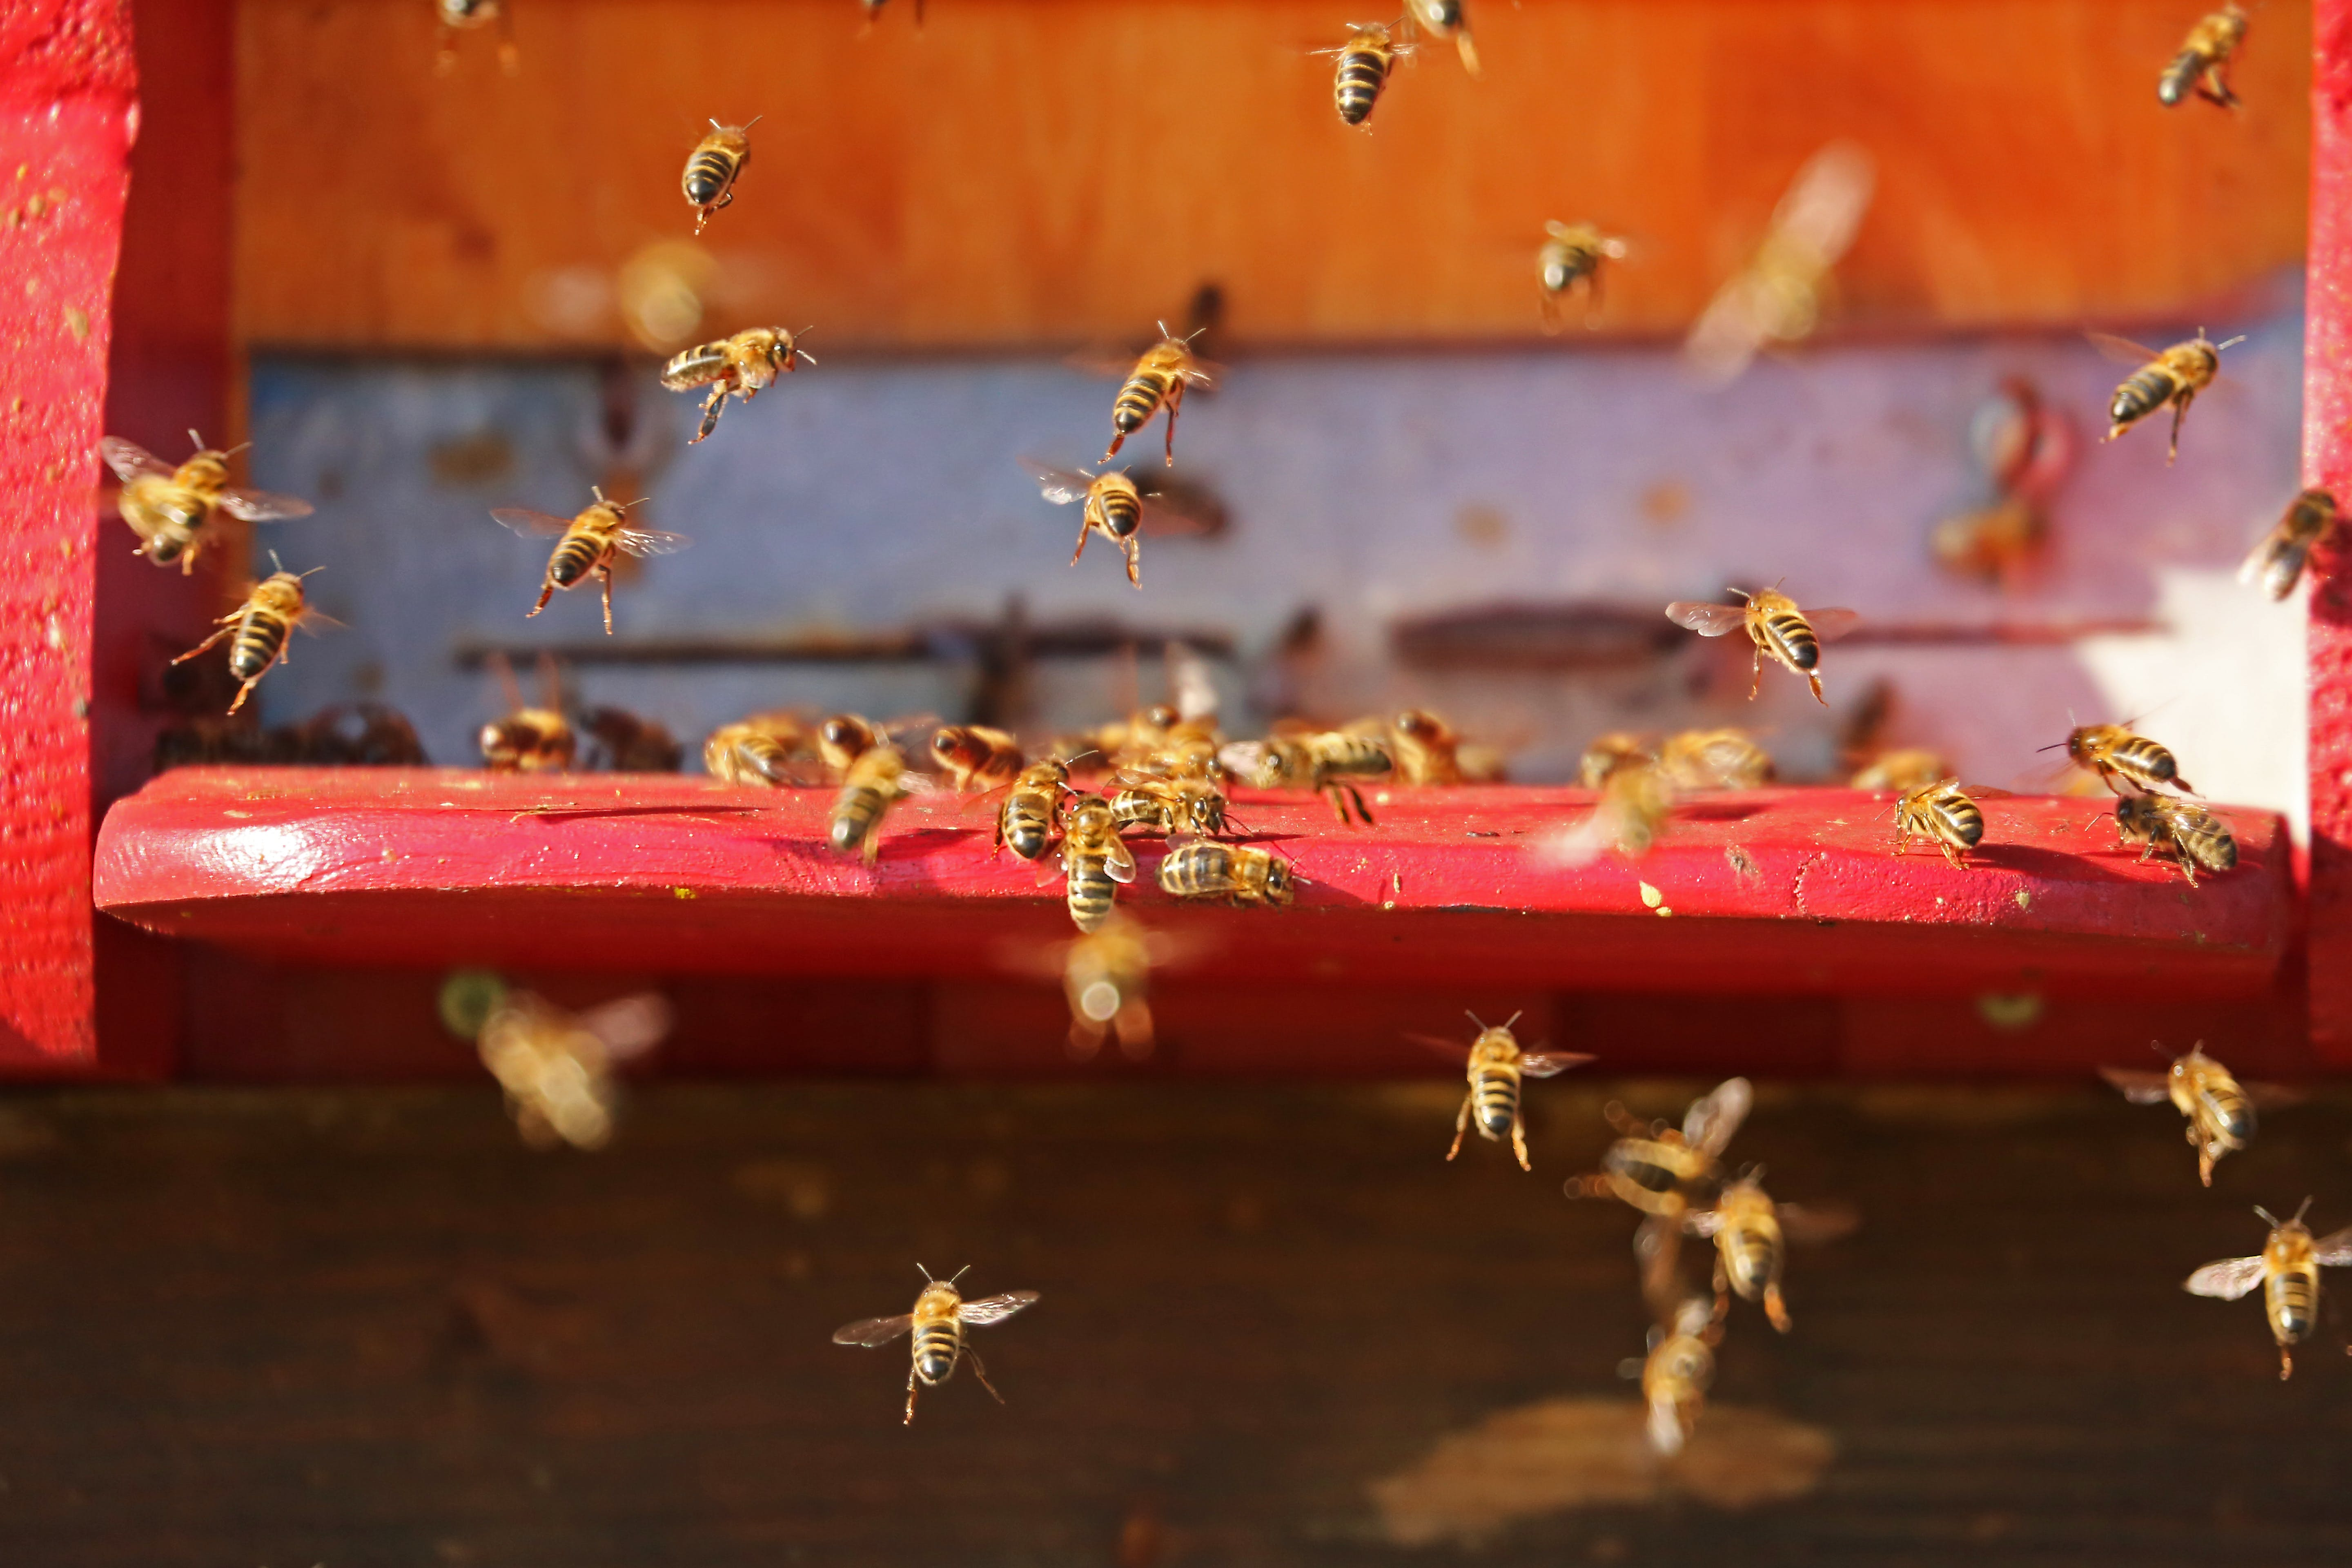 bees, flying, insect